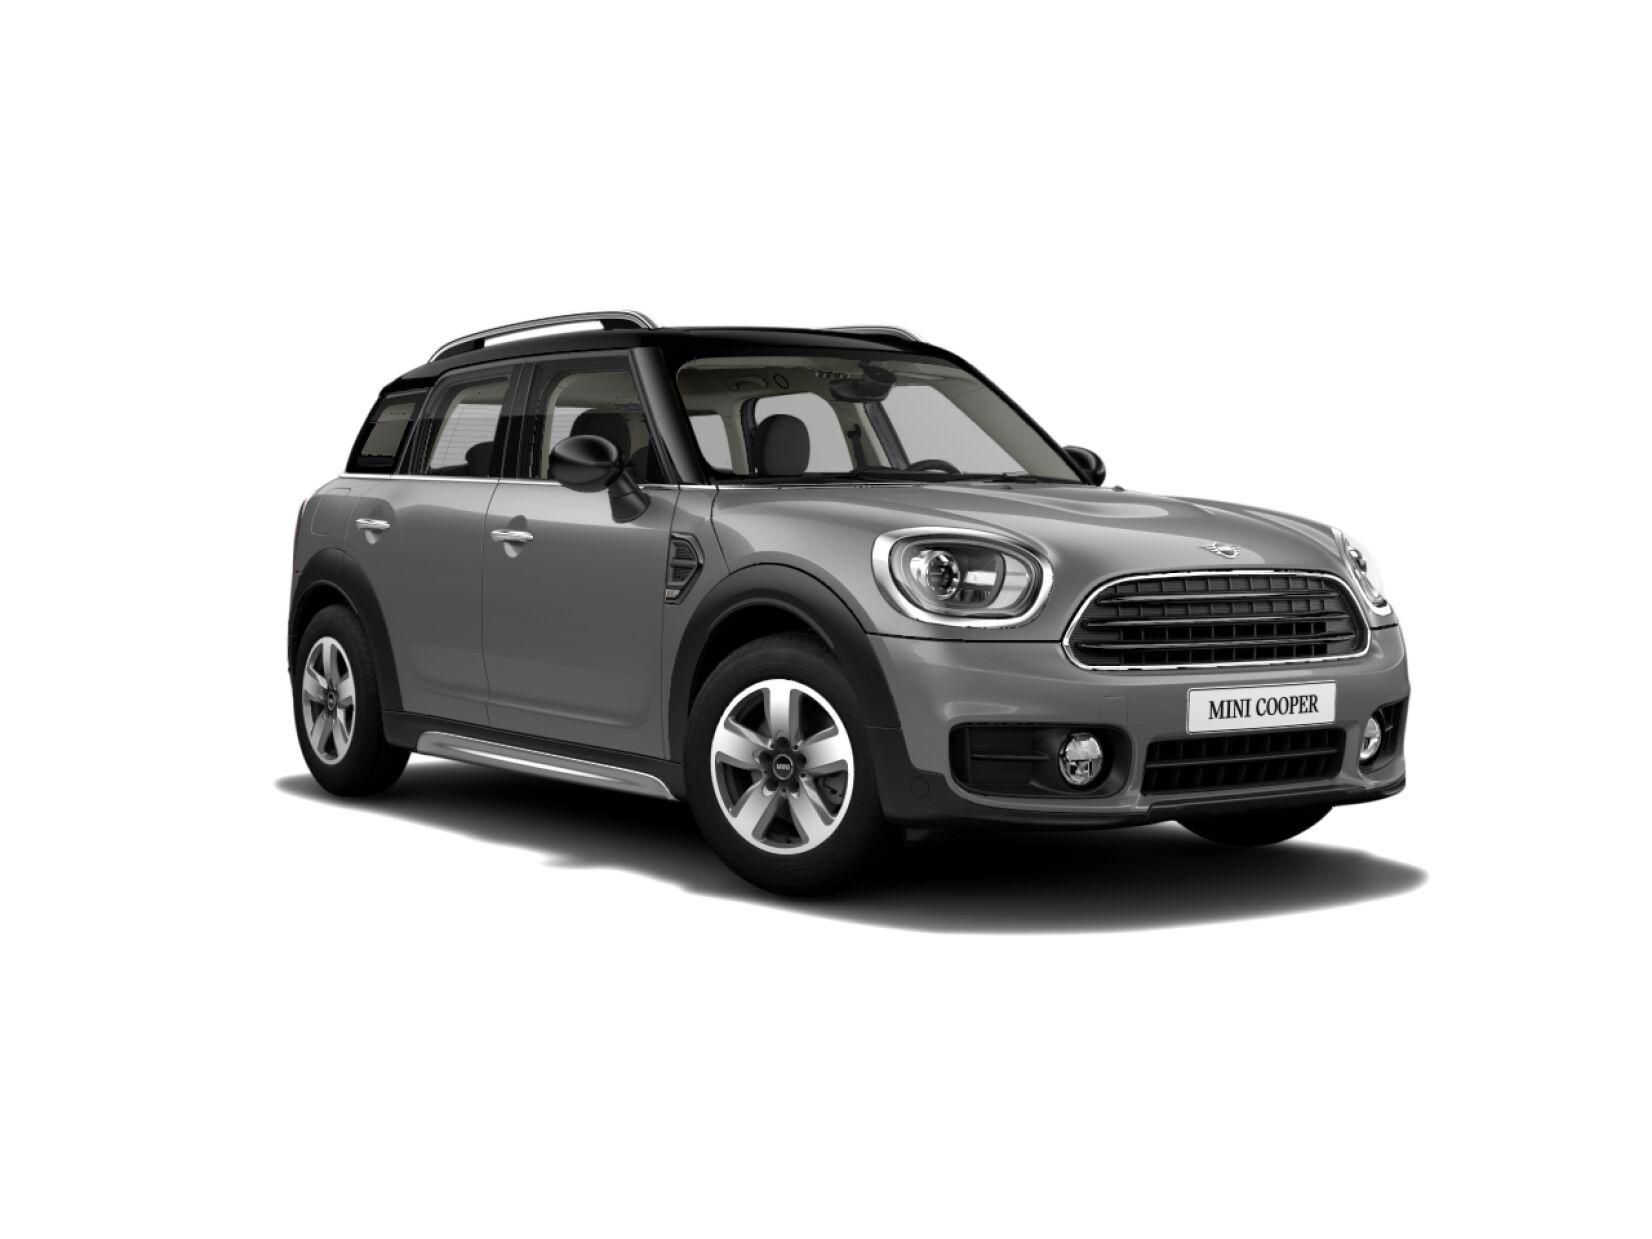 MINI Cooper Countryman [7408886]